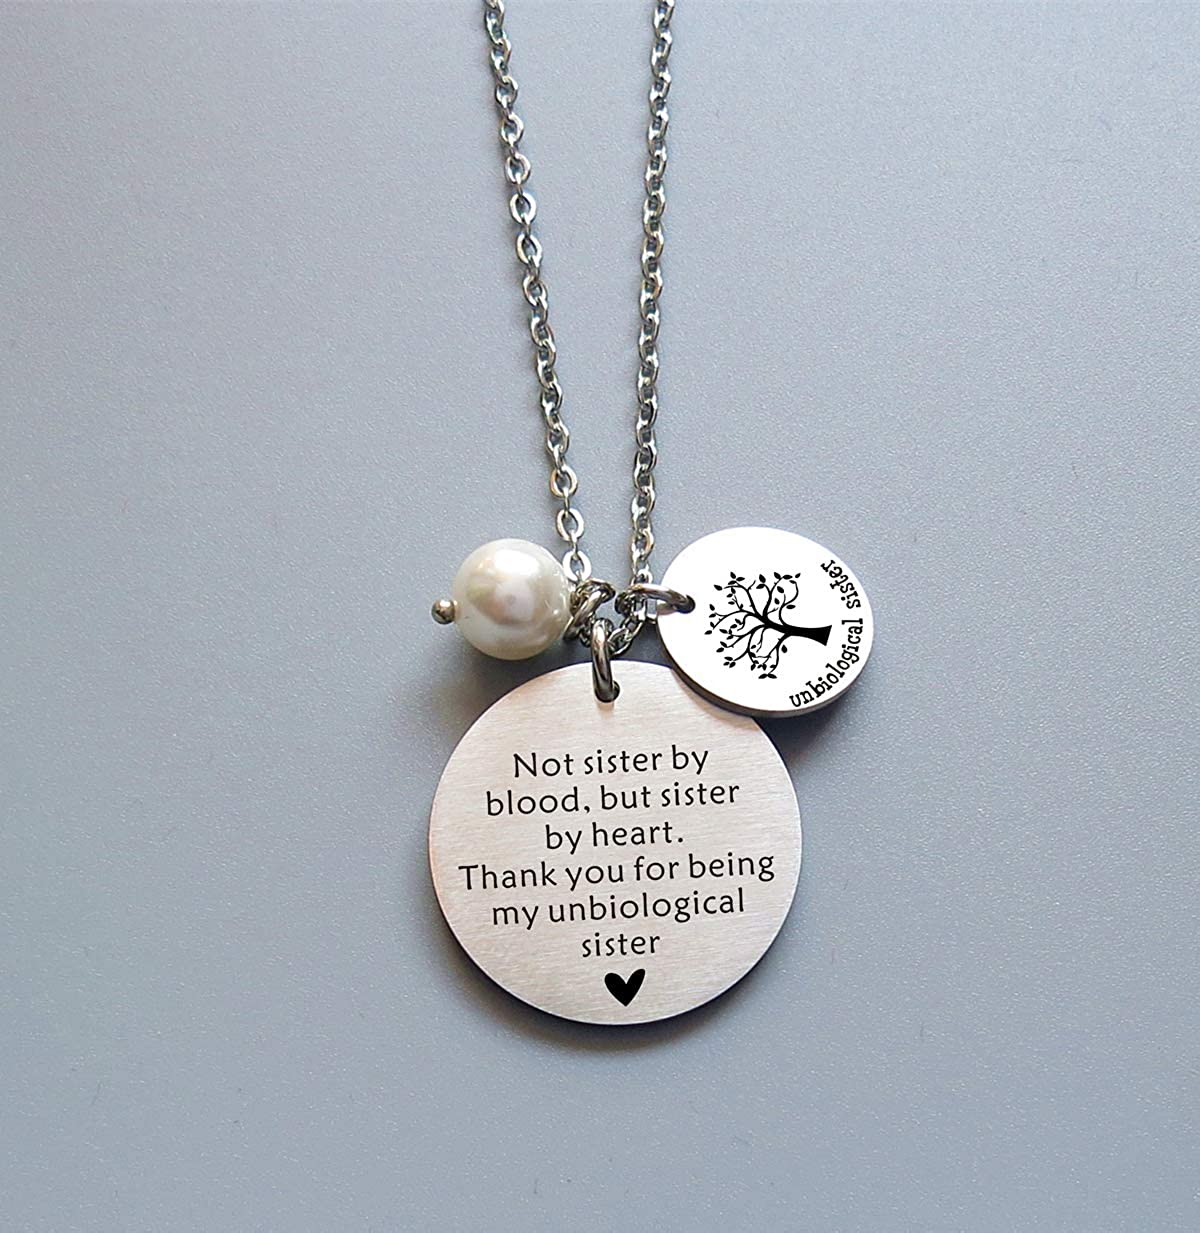 Friendship Necklace for Women Girls Soul Sisters Gifts for BFF Friends Jewelry Love for Her